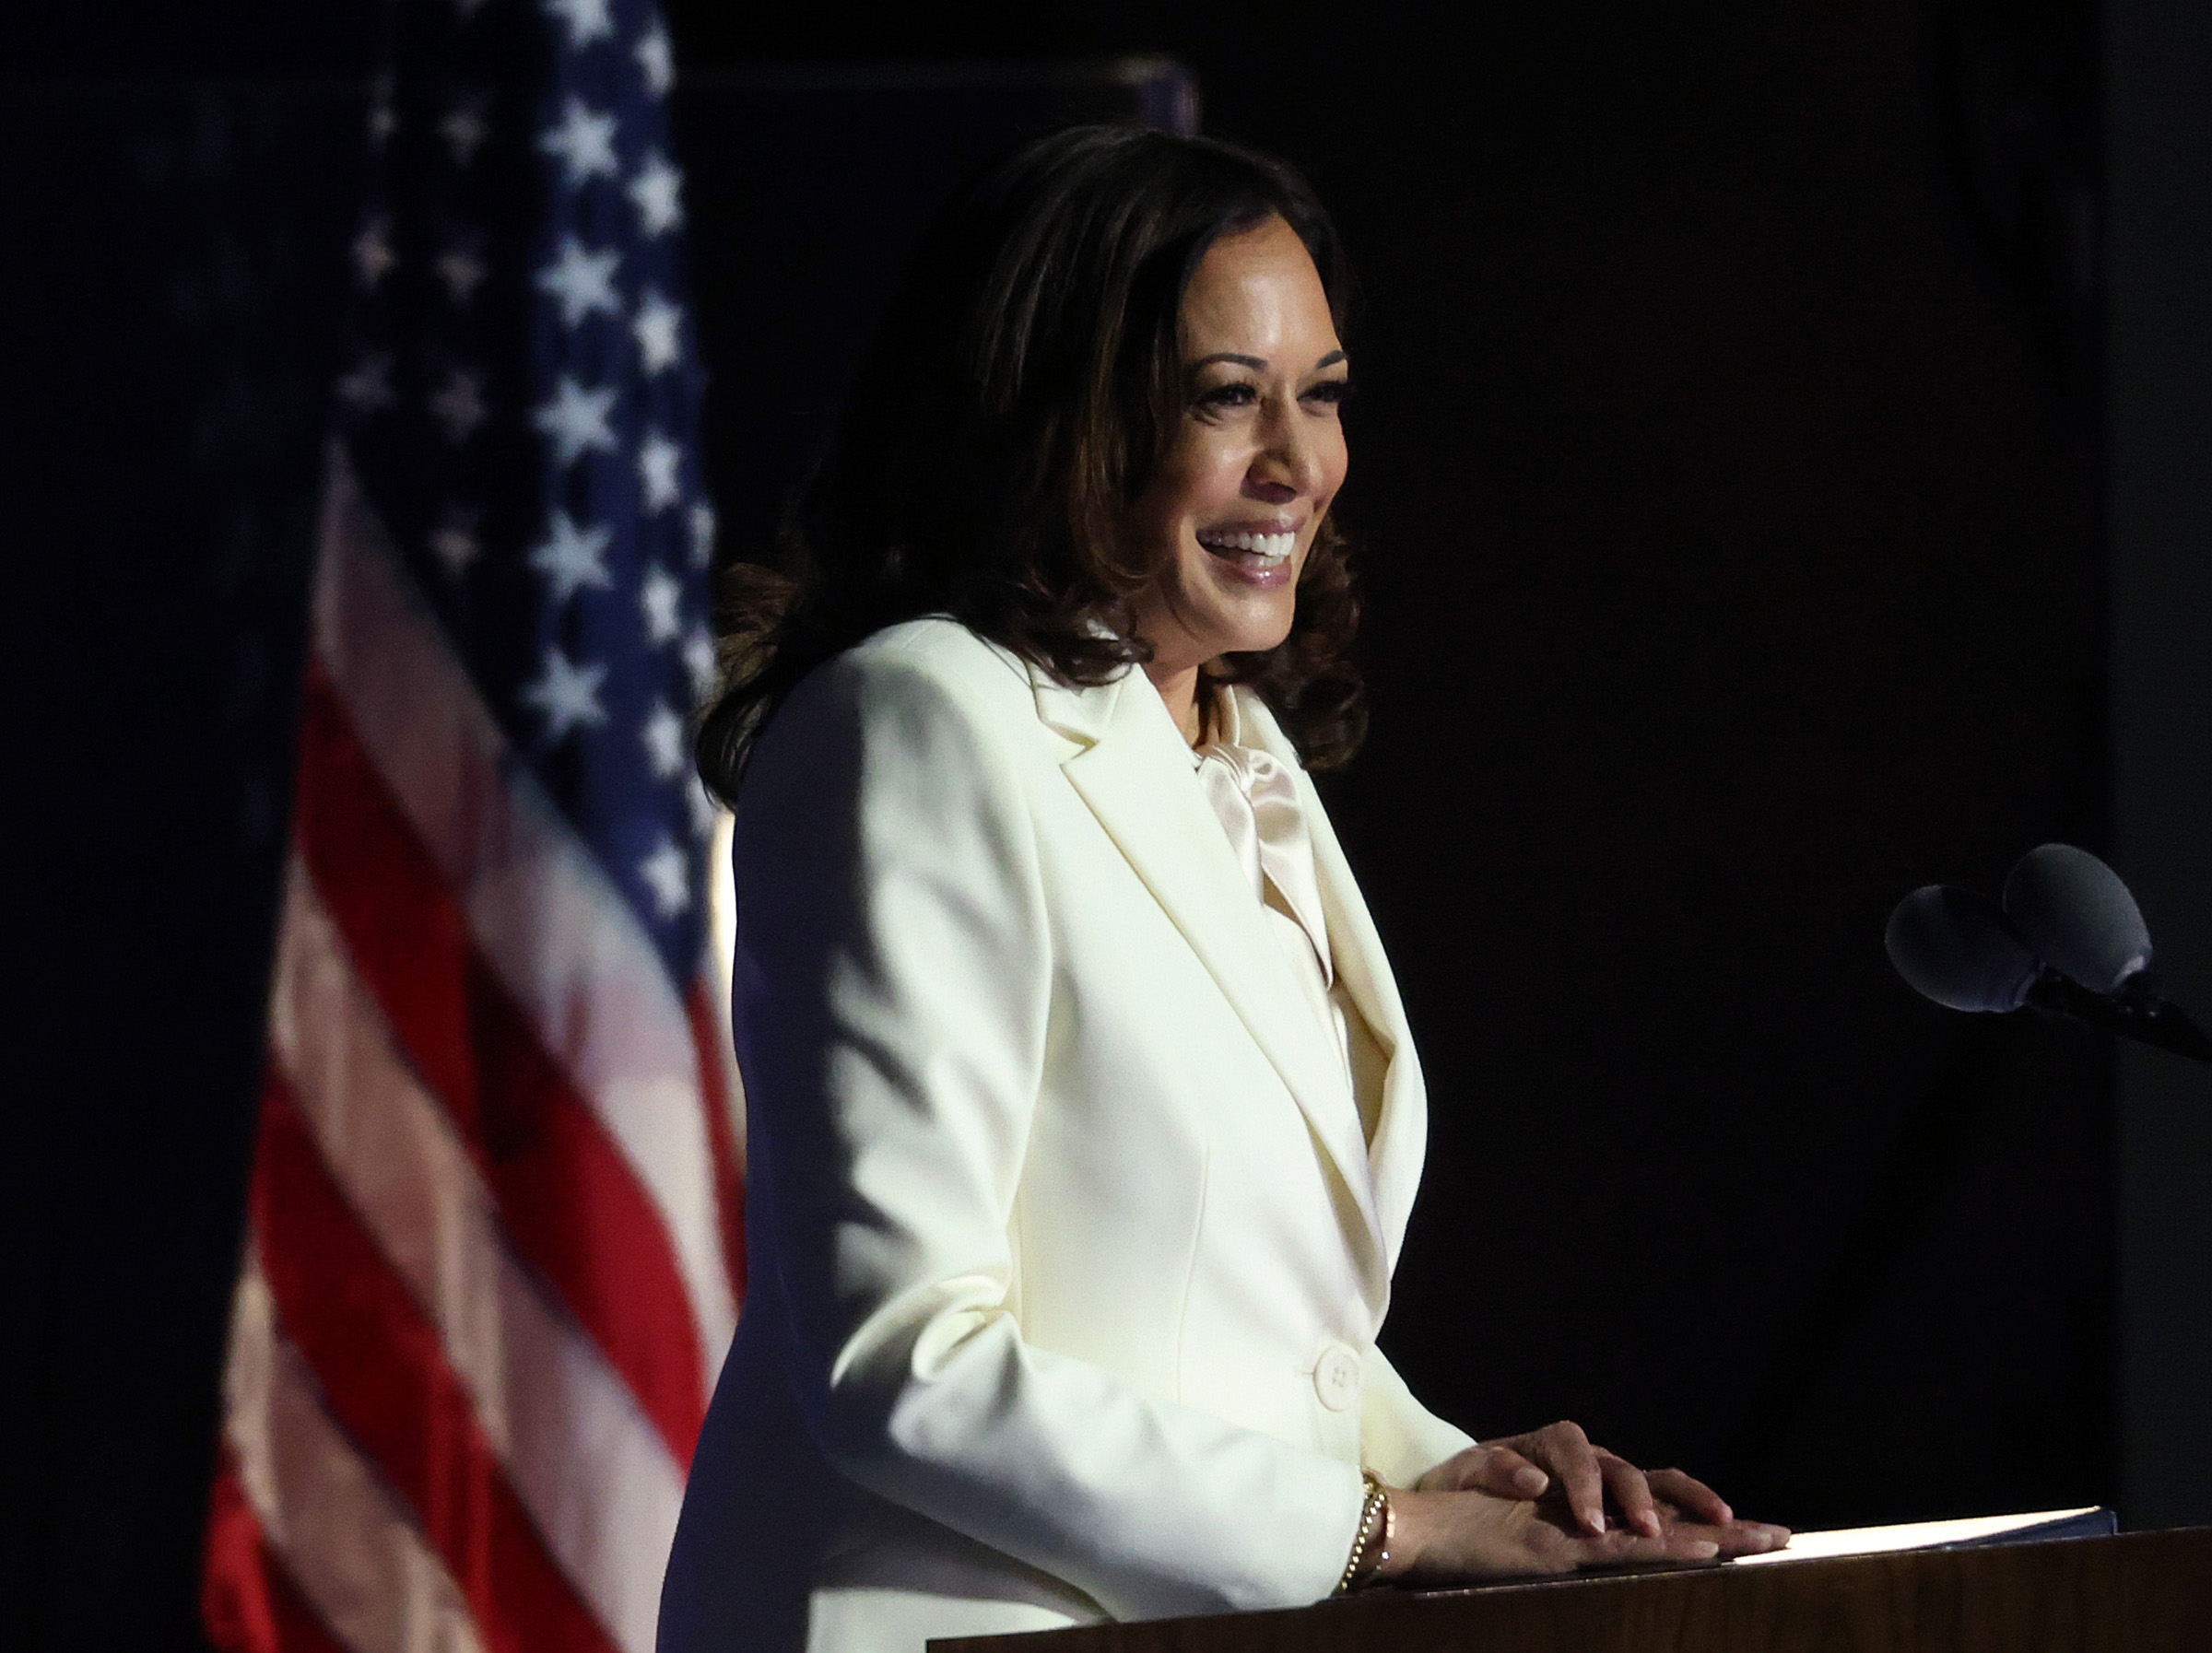 Vice President-elect Kamala Harris speaks on stage before President-elect Joe Biden's address to the nation in Wilmington, Delaware on Nov. 7, 2020.